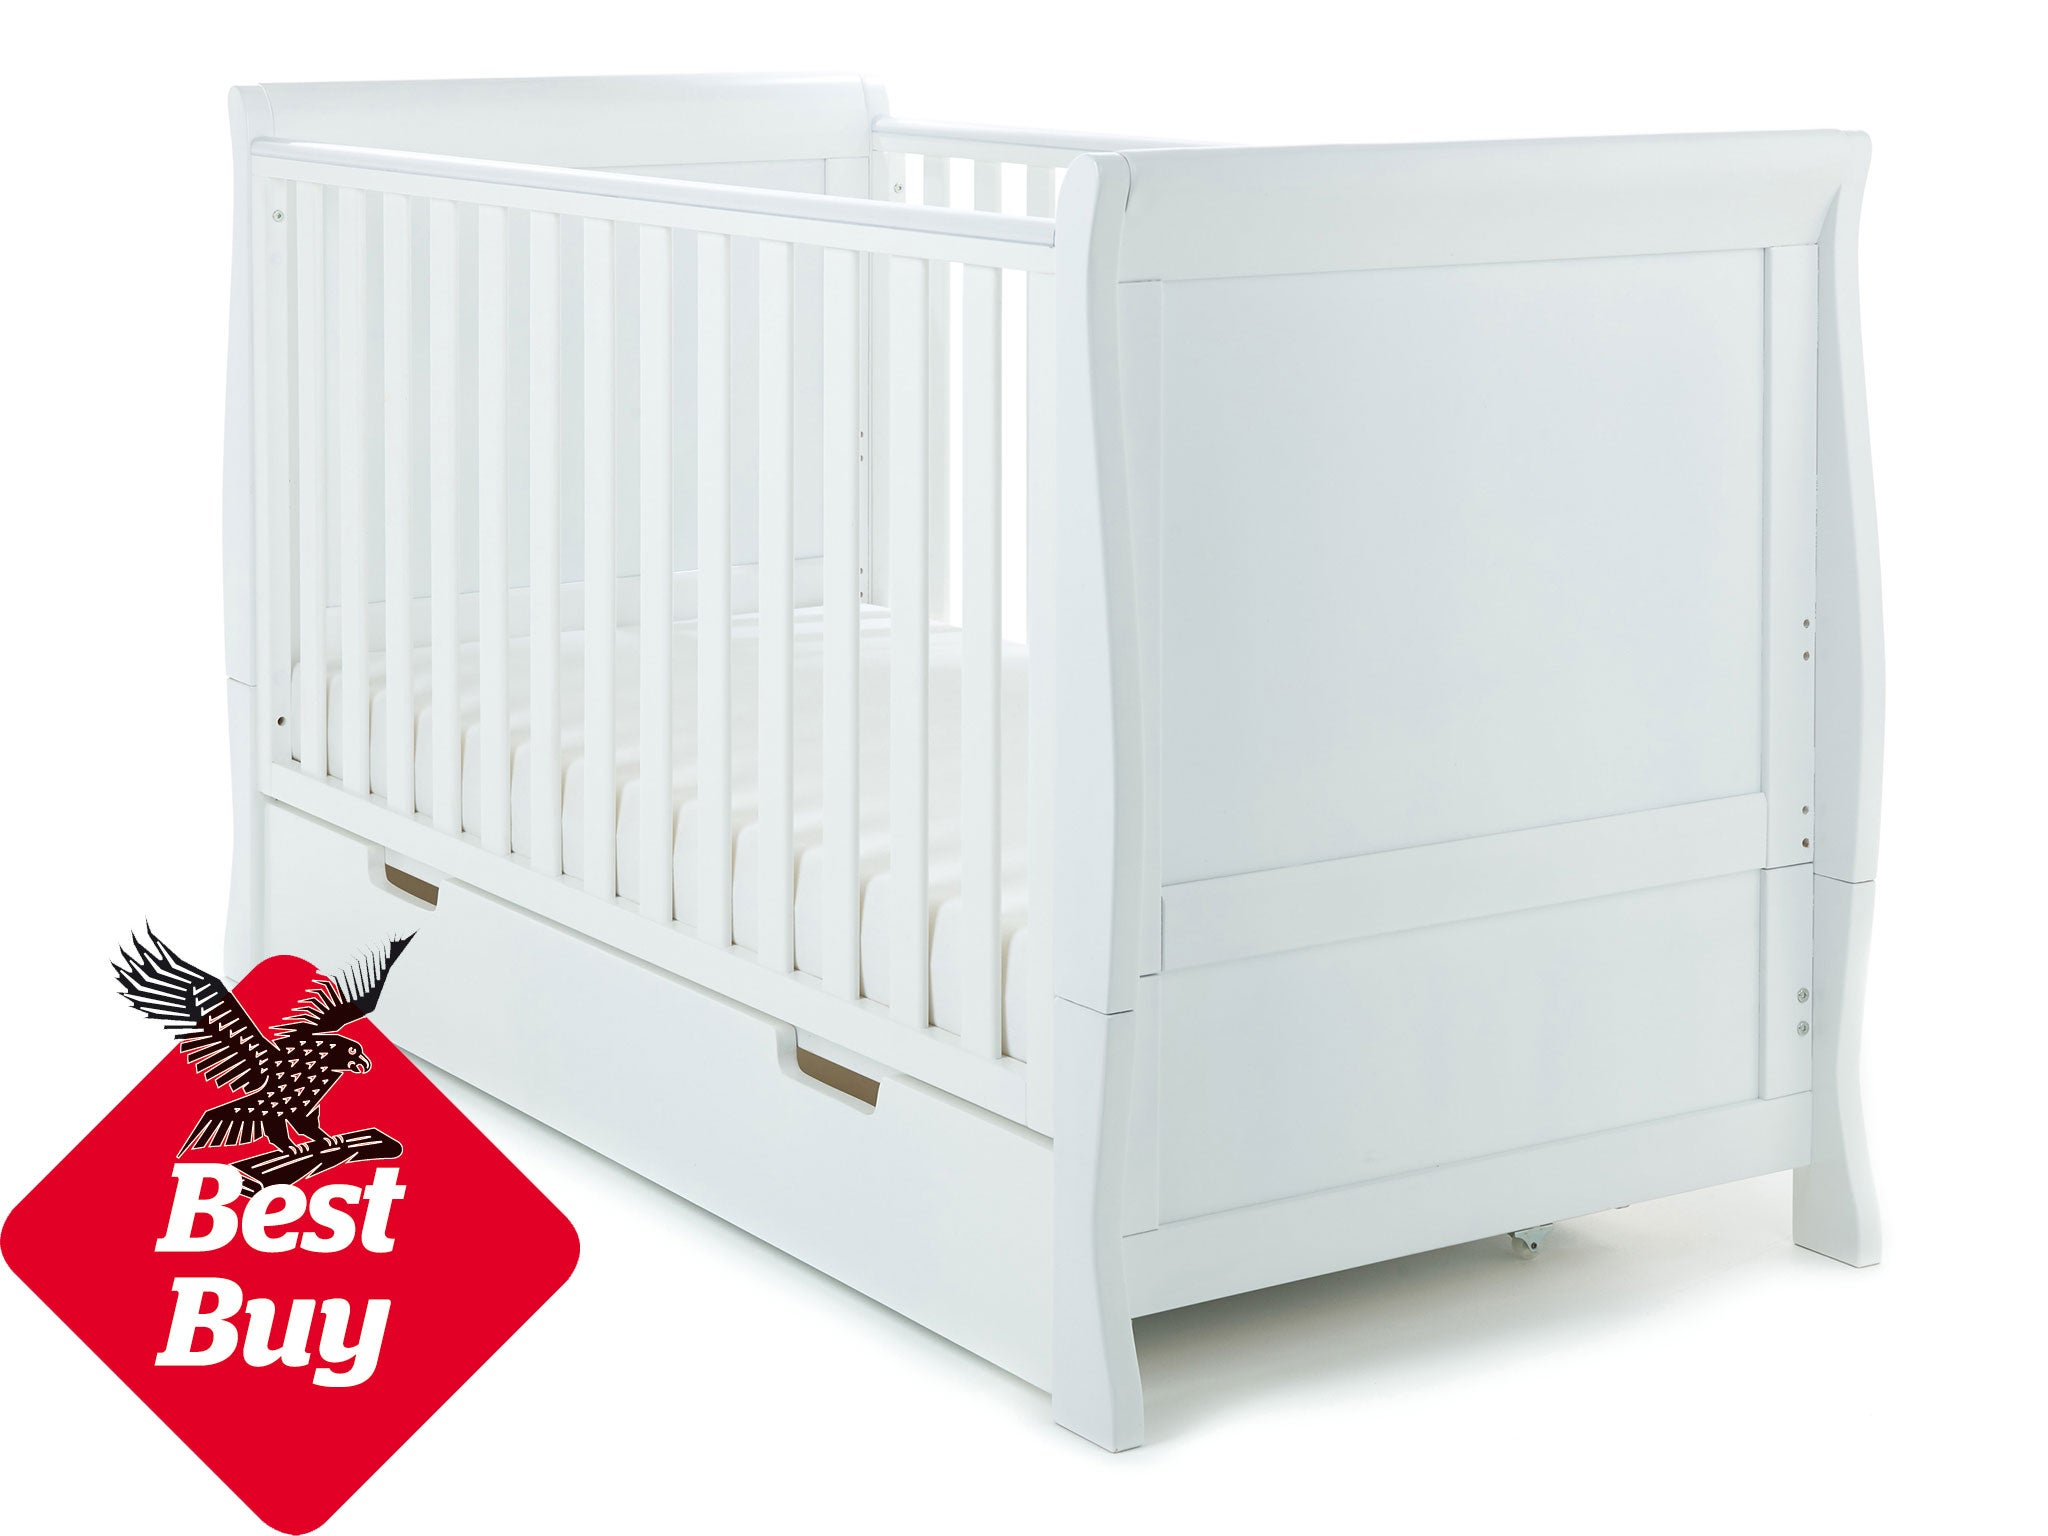 Baby Cots Uk 10 best baby beds the independent this convertible white cot features a beautiful curved sleigh like design and is constructed from solid wood it has three adjustable mattress heights sisterspd